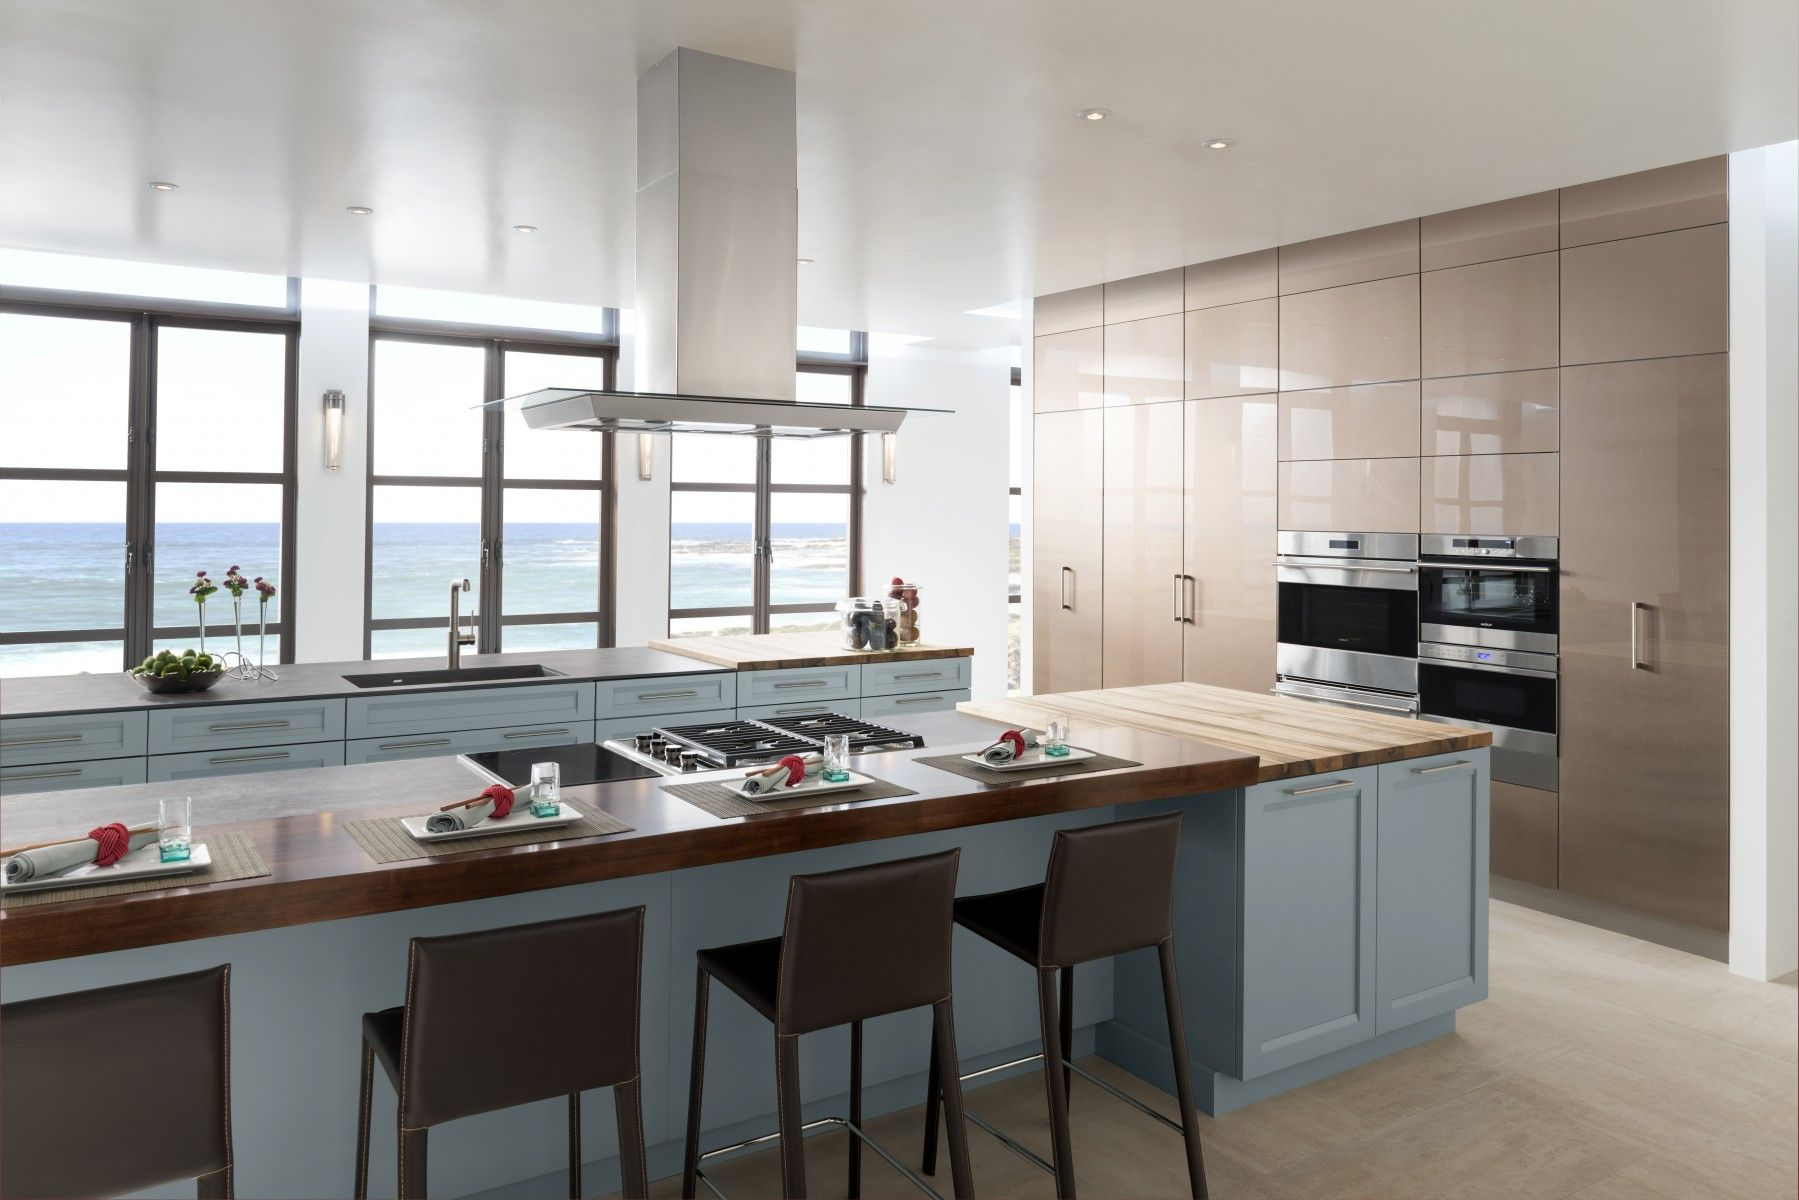 Oceanside   Showcase Kitchens and Baths   Kitchen Cabinets for my ...